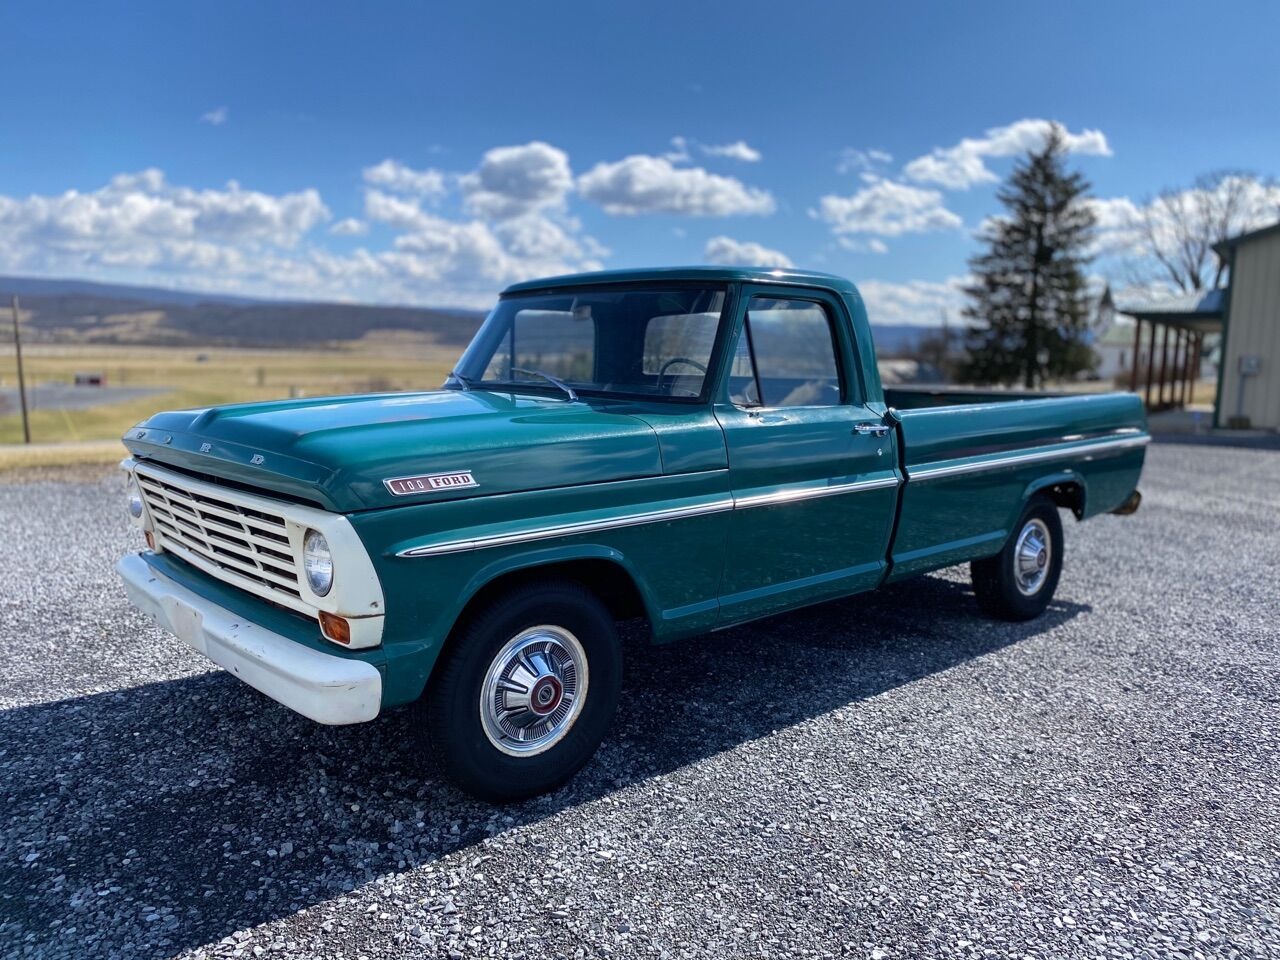 1967 Ford F-100